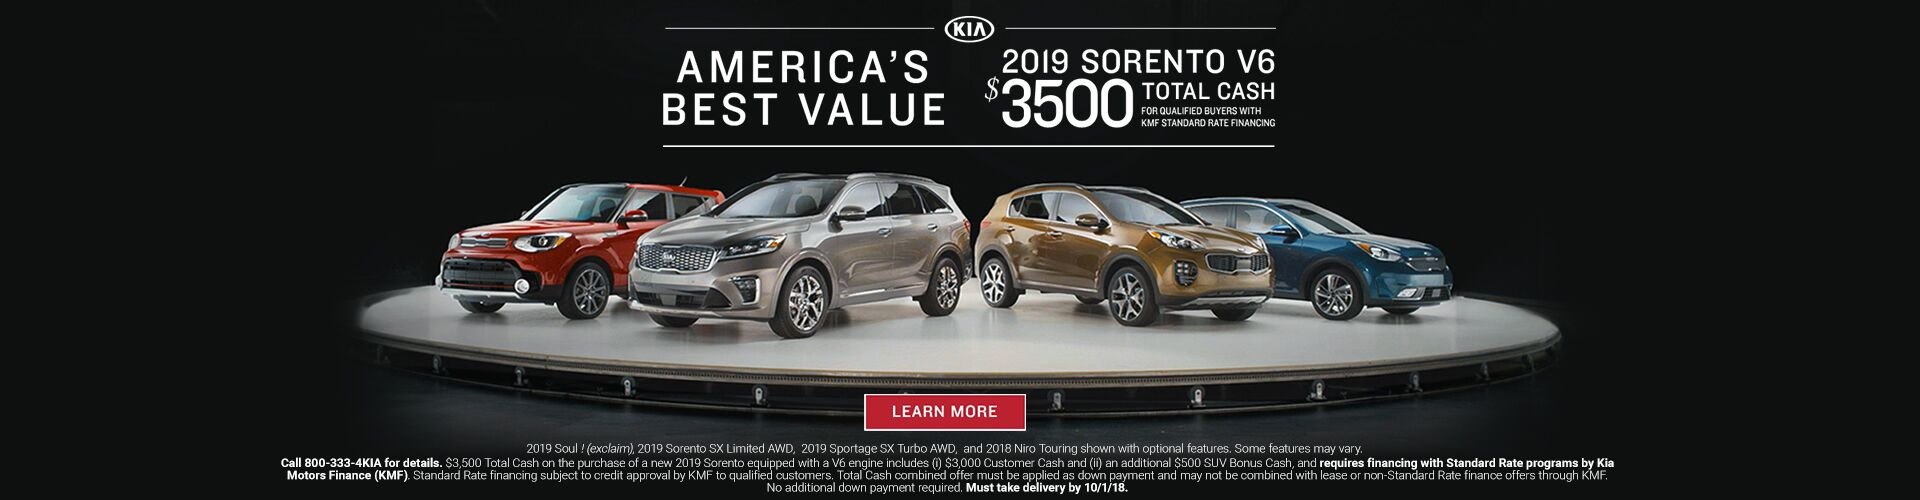 America's Best Value 2019 Sorento Bev Smith Kia of Fort Pierce